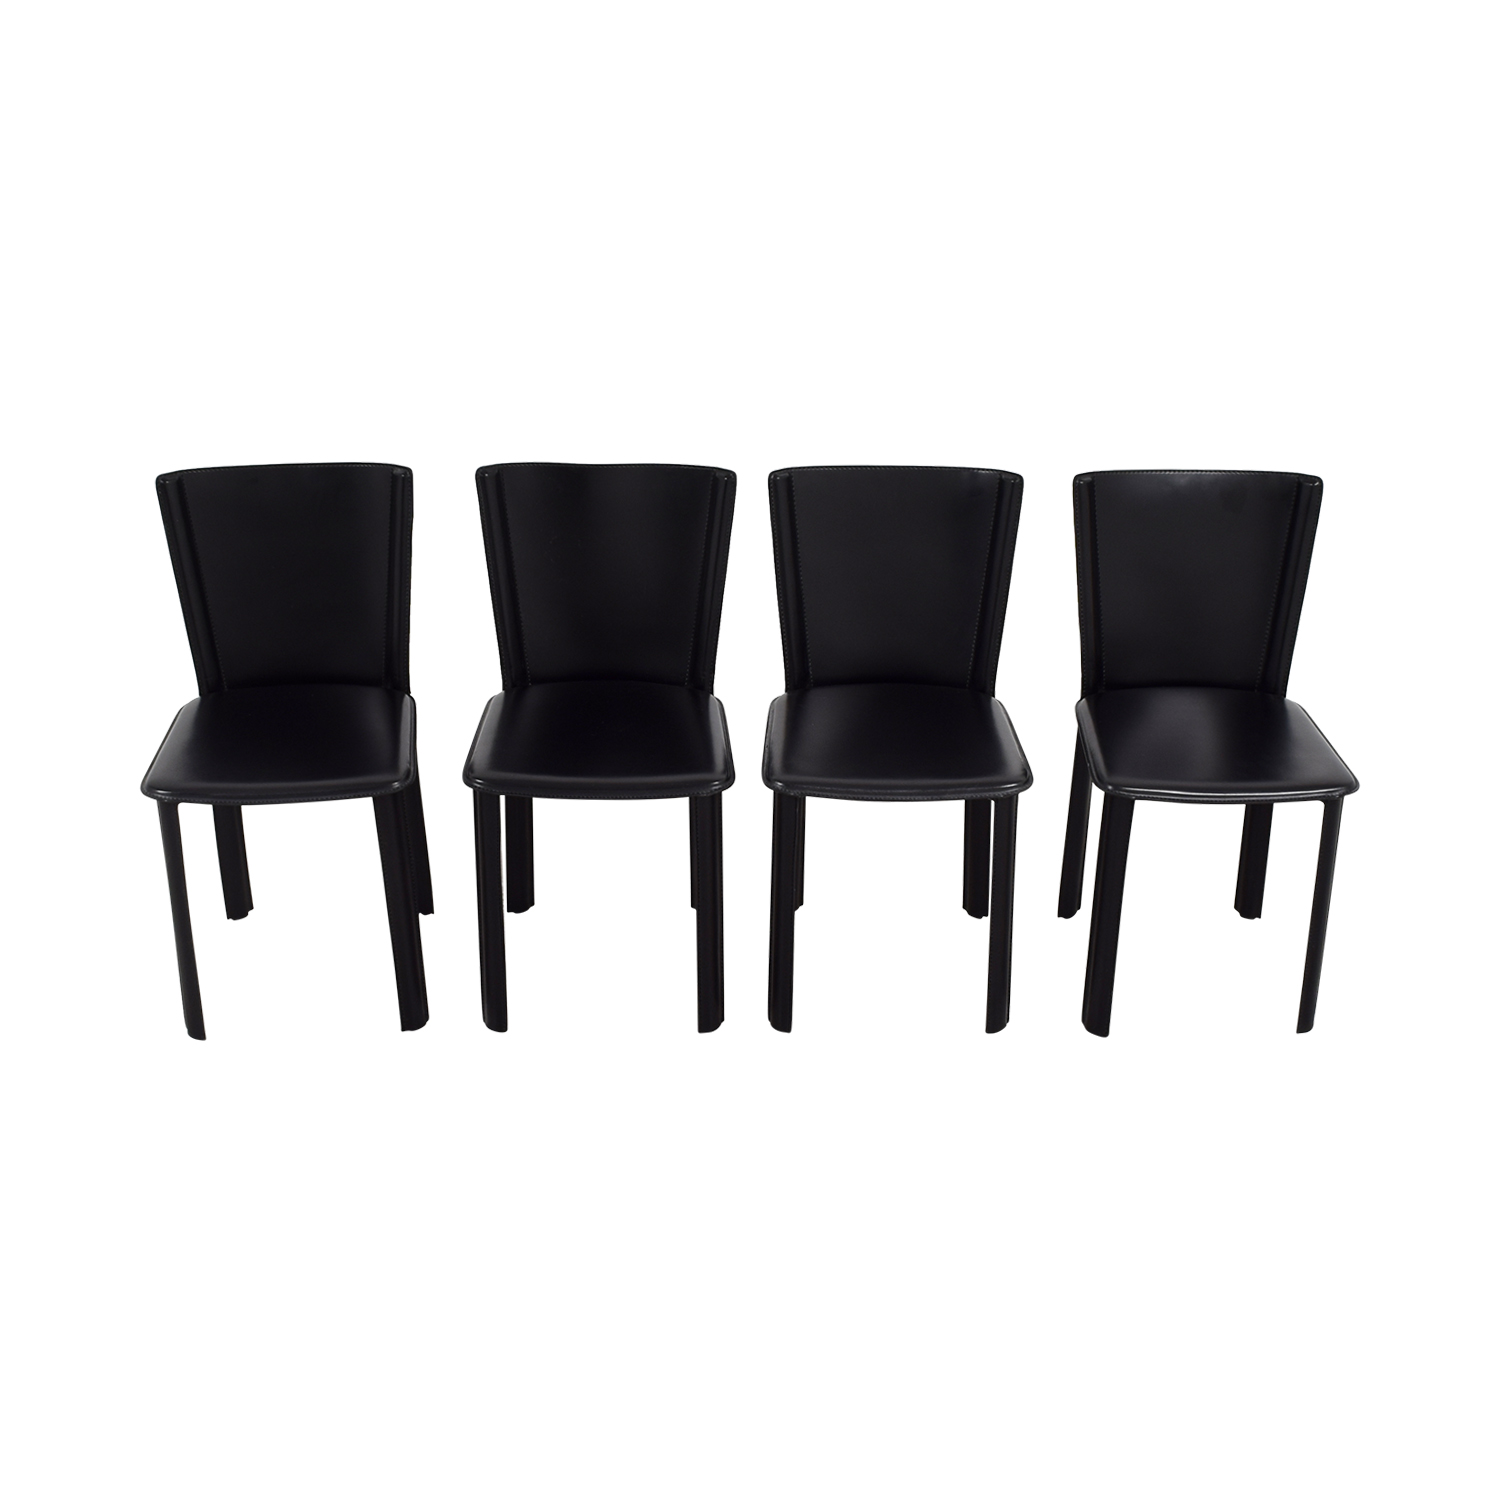 chair design within reach office adjustments 79 off allegro